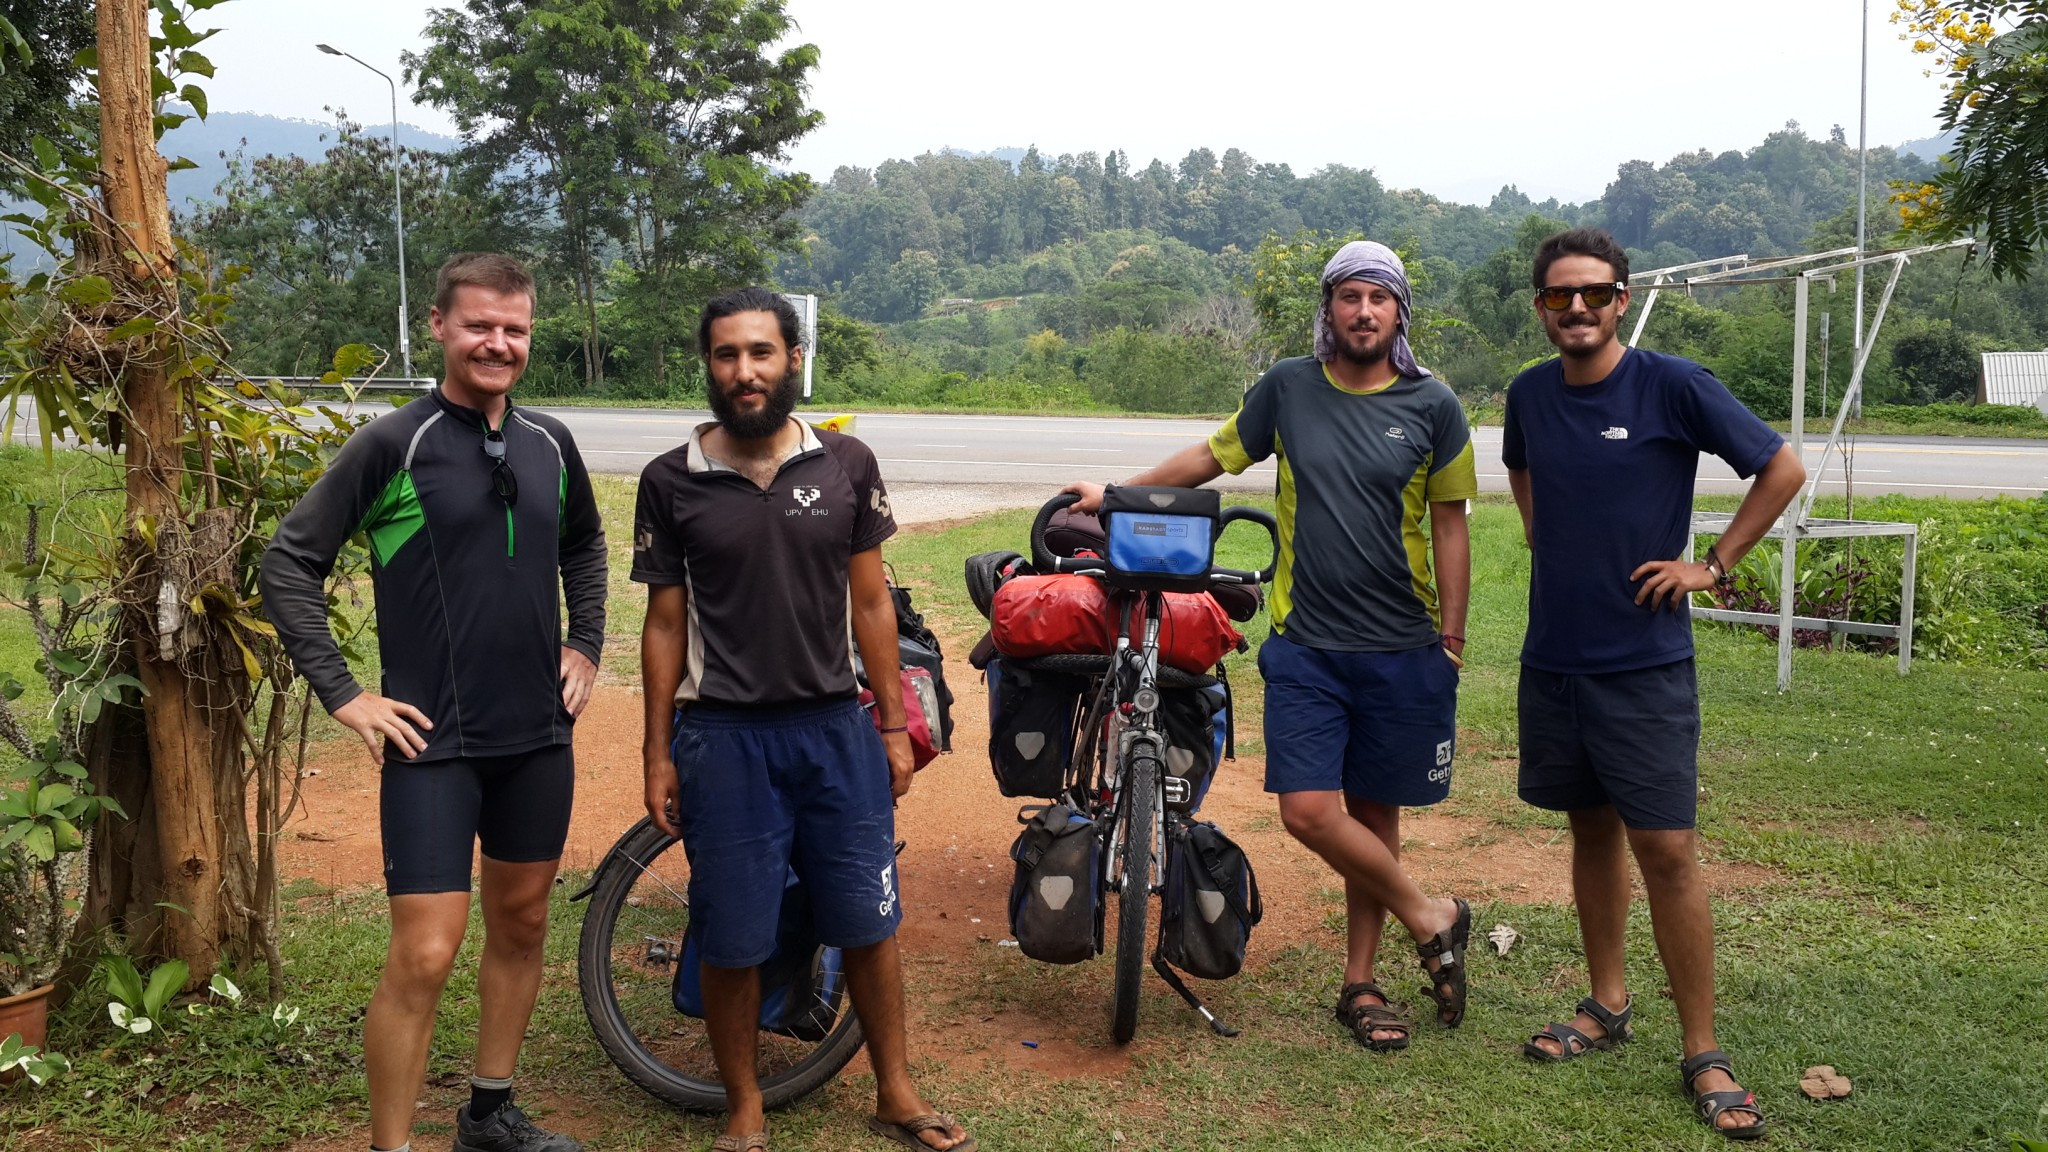 The Spanish cyclist I met between Chiang Rai and Chiang Mai.